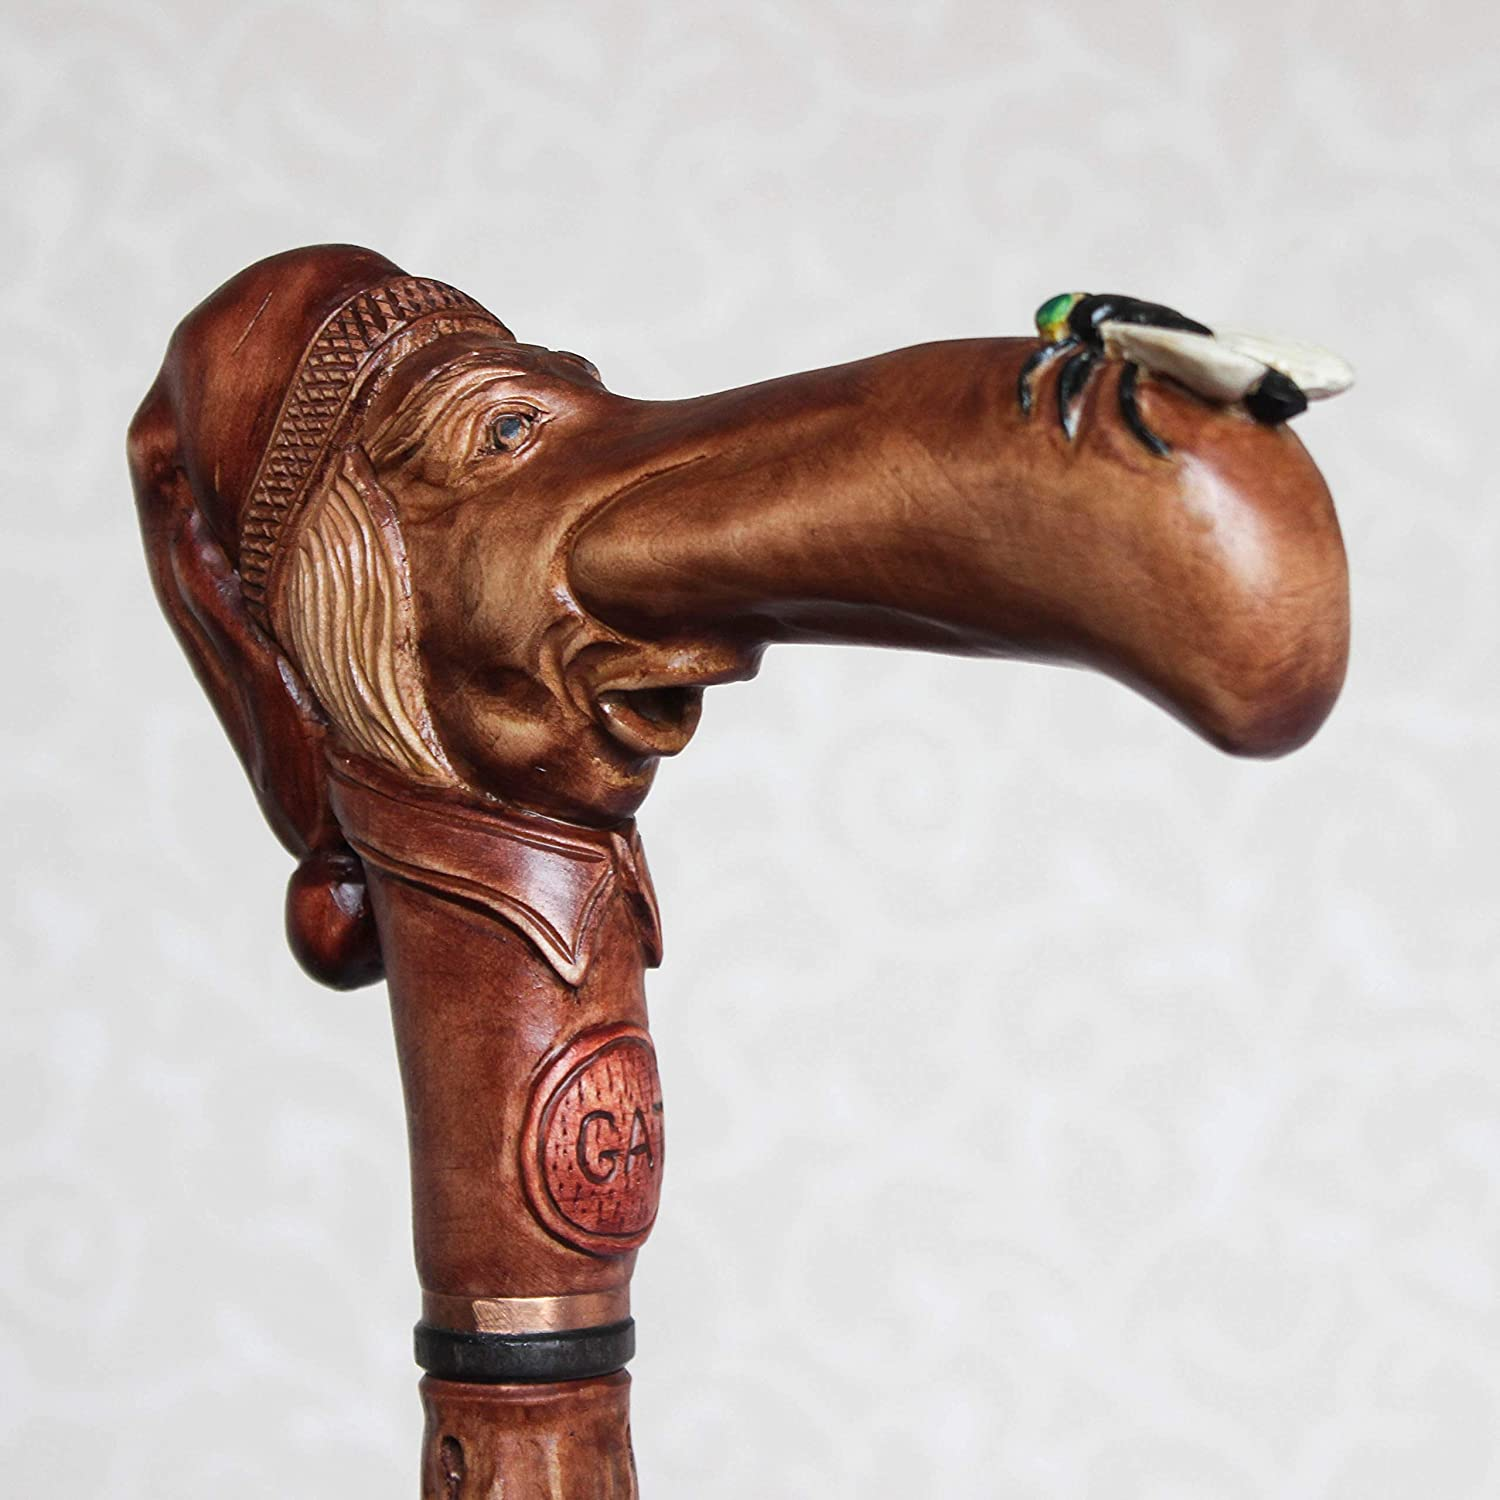 Custom walking cane Man in stocking cap with fly on the nose Hand carved walking stick Wooden cane